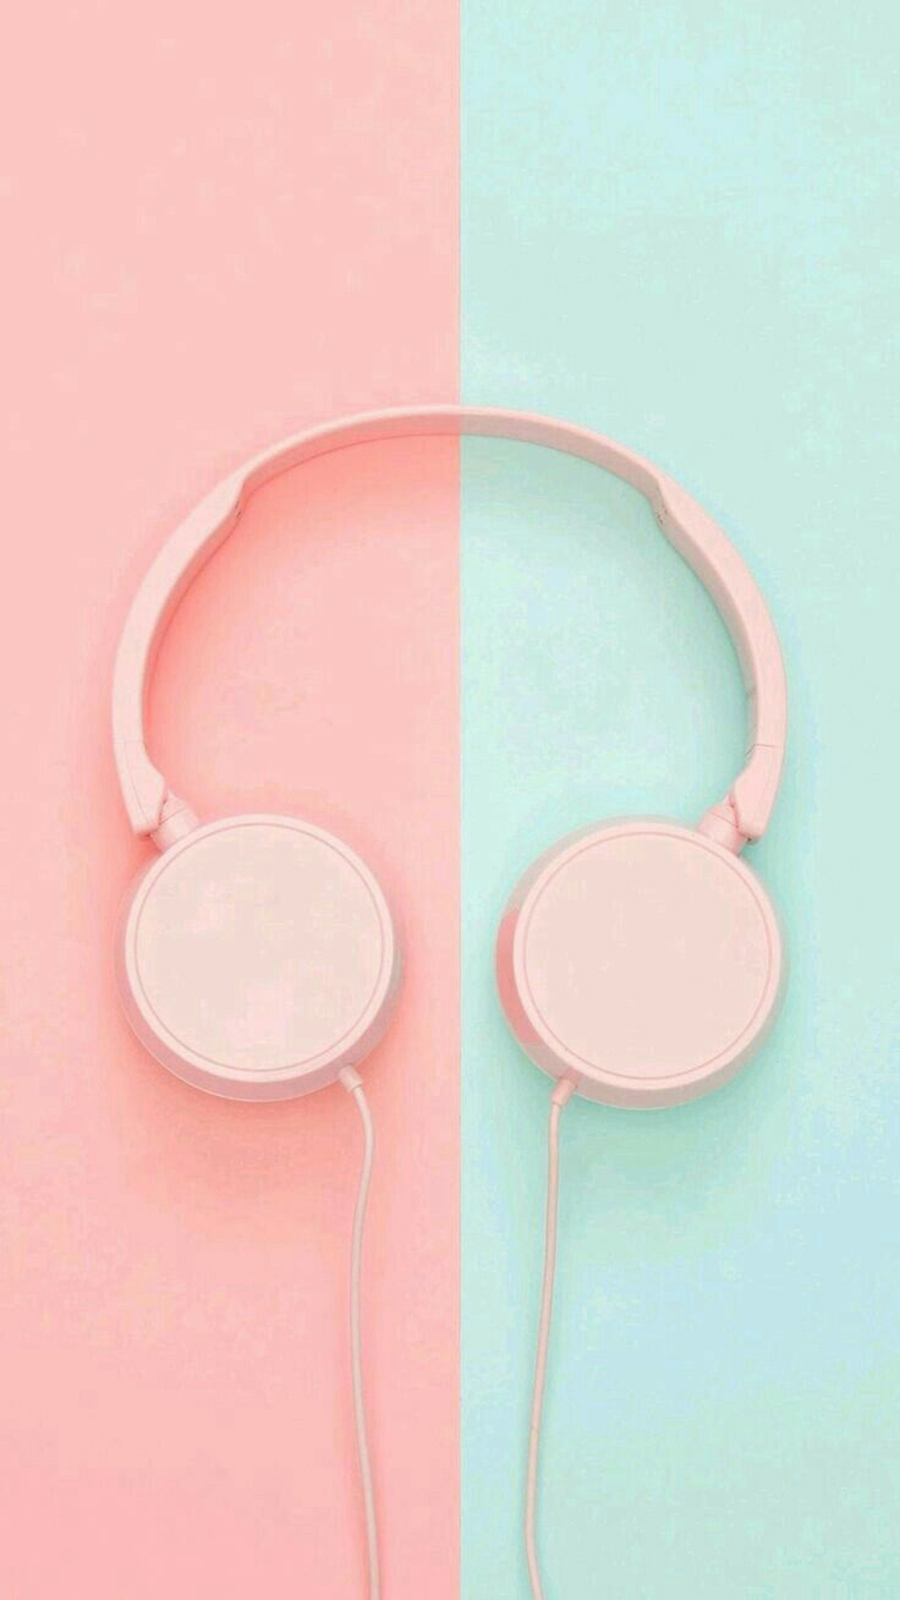 Music HD Wallpapers Free Download